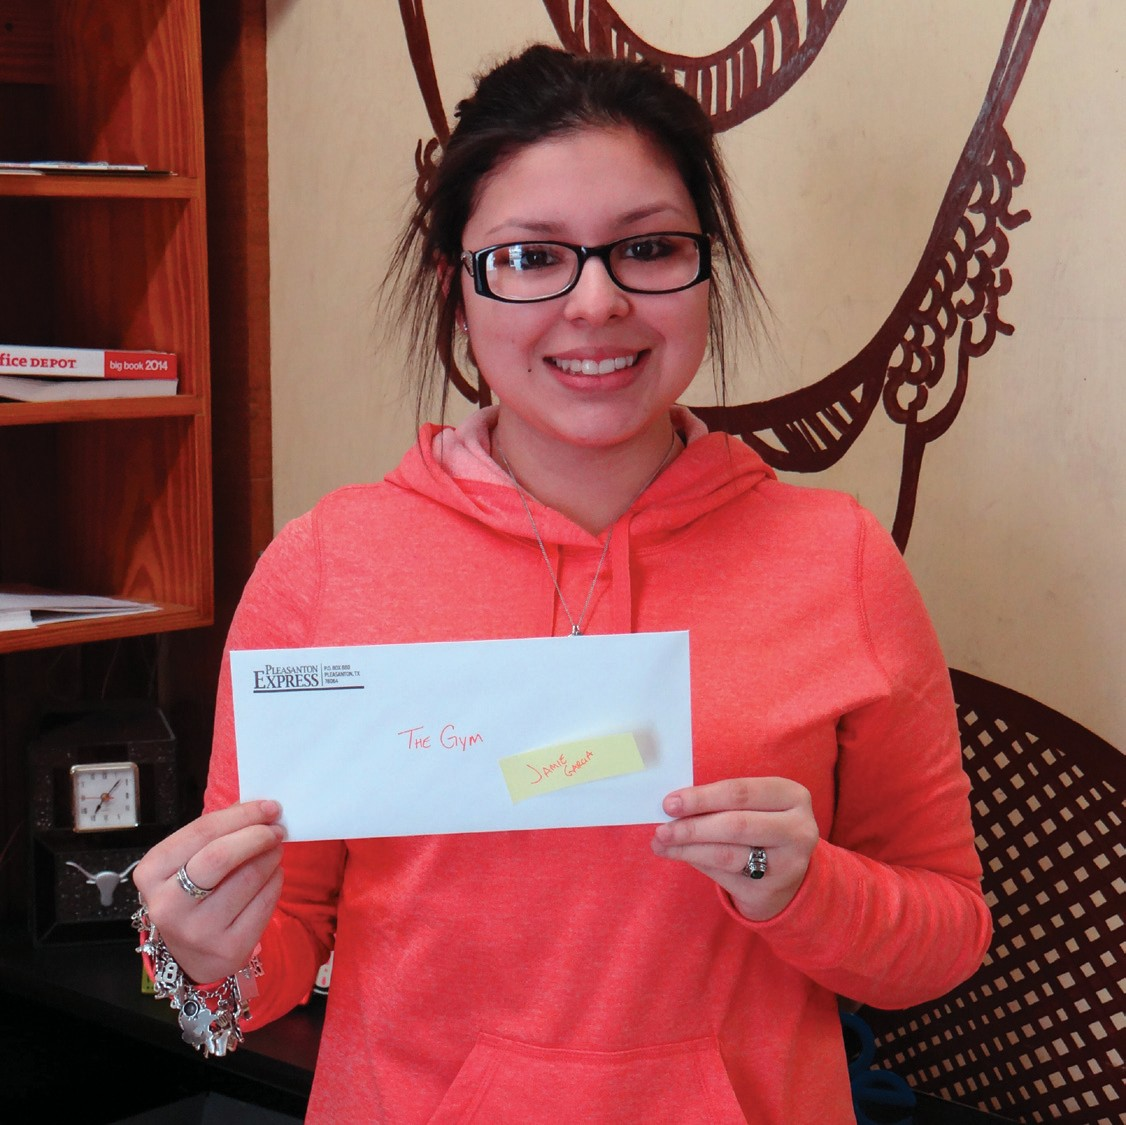 Scavenger Hunt grand prize winner Jamie Garcia was excited about the six-month membership to They Gym in Jourdanton. Jamie also won a $25 gift card to Reina's Scrub Shop.